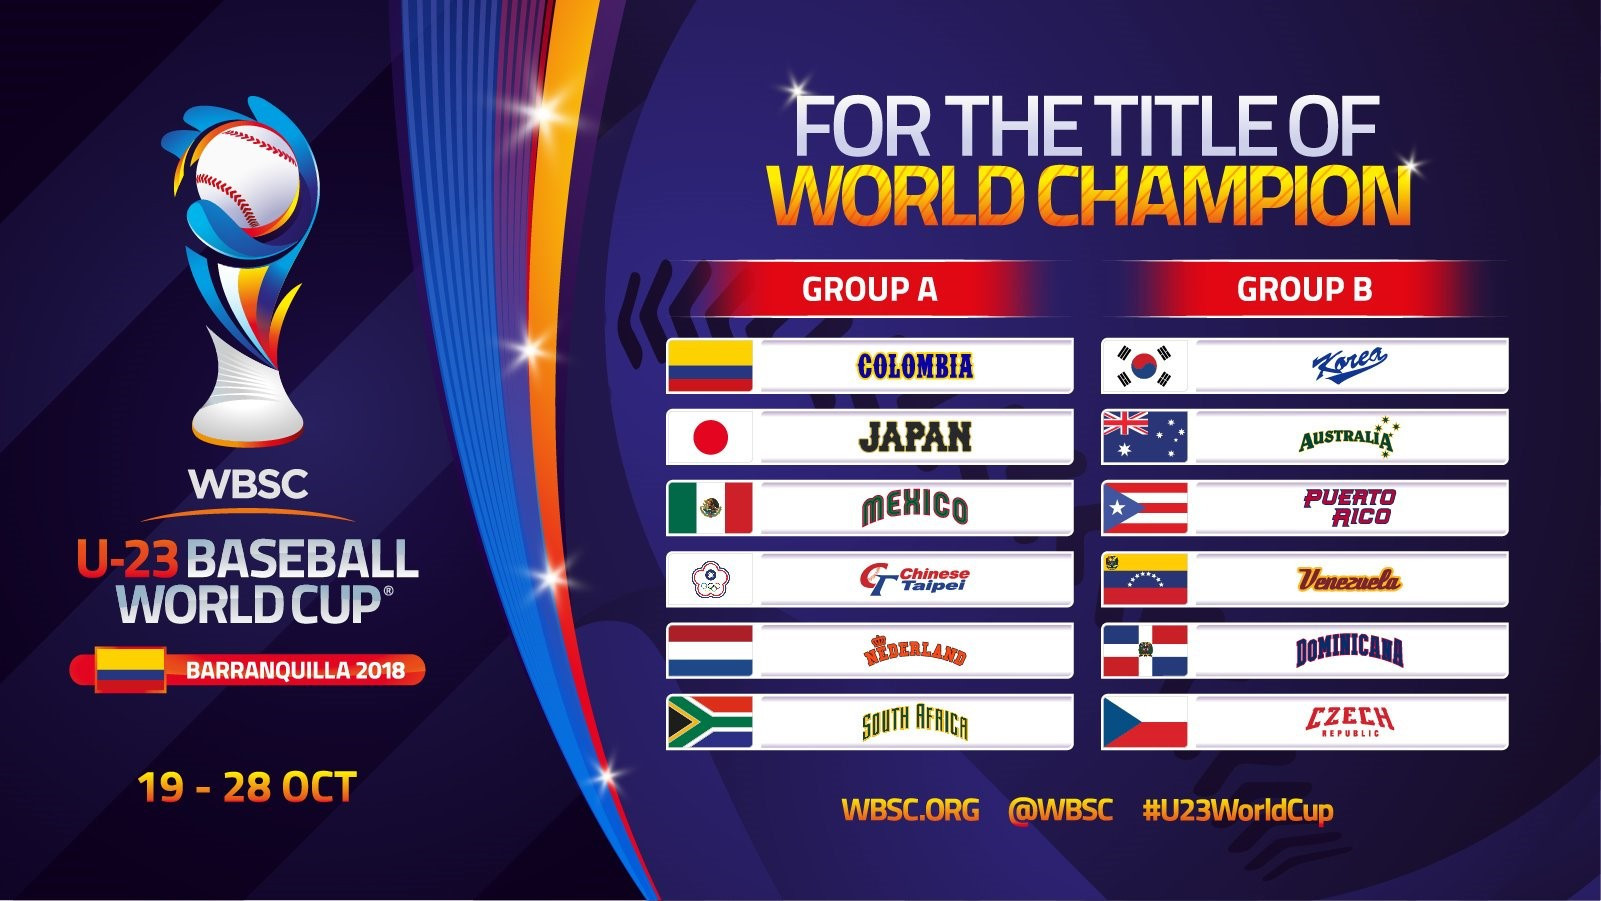 WBSC reveal group draw for Under-23 Baseball World Cup